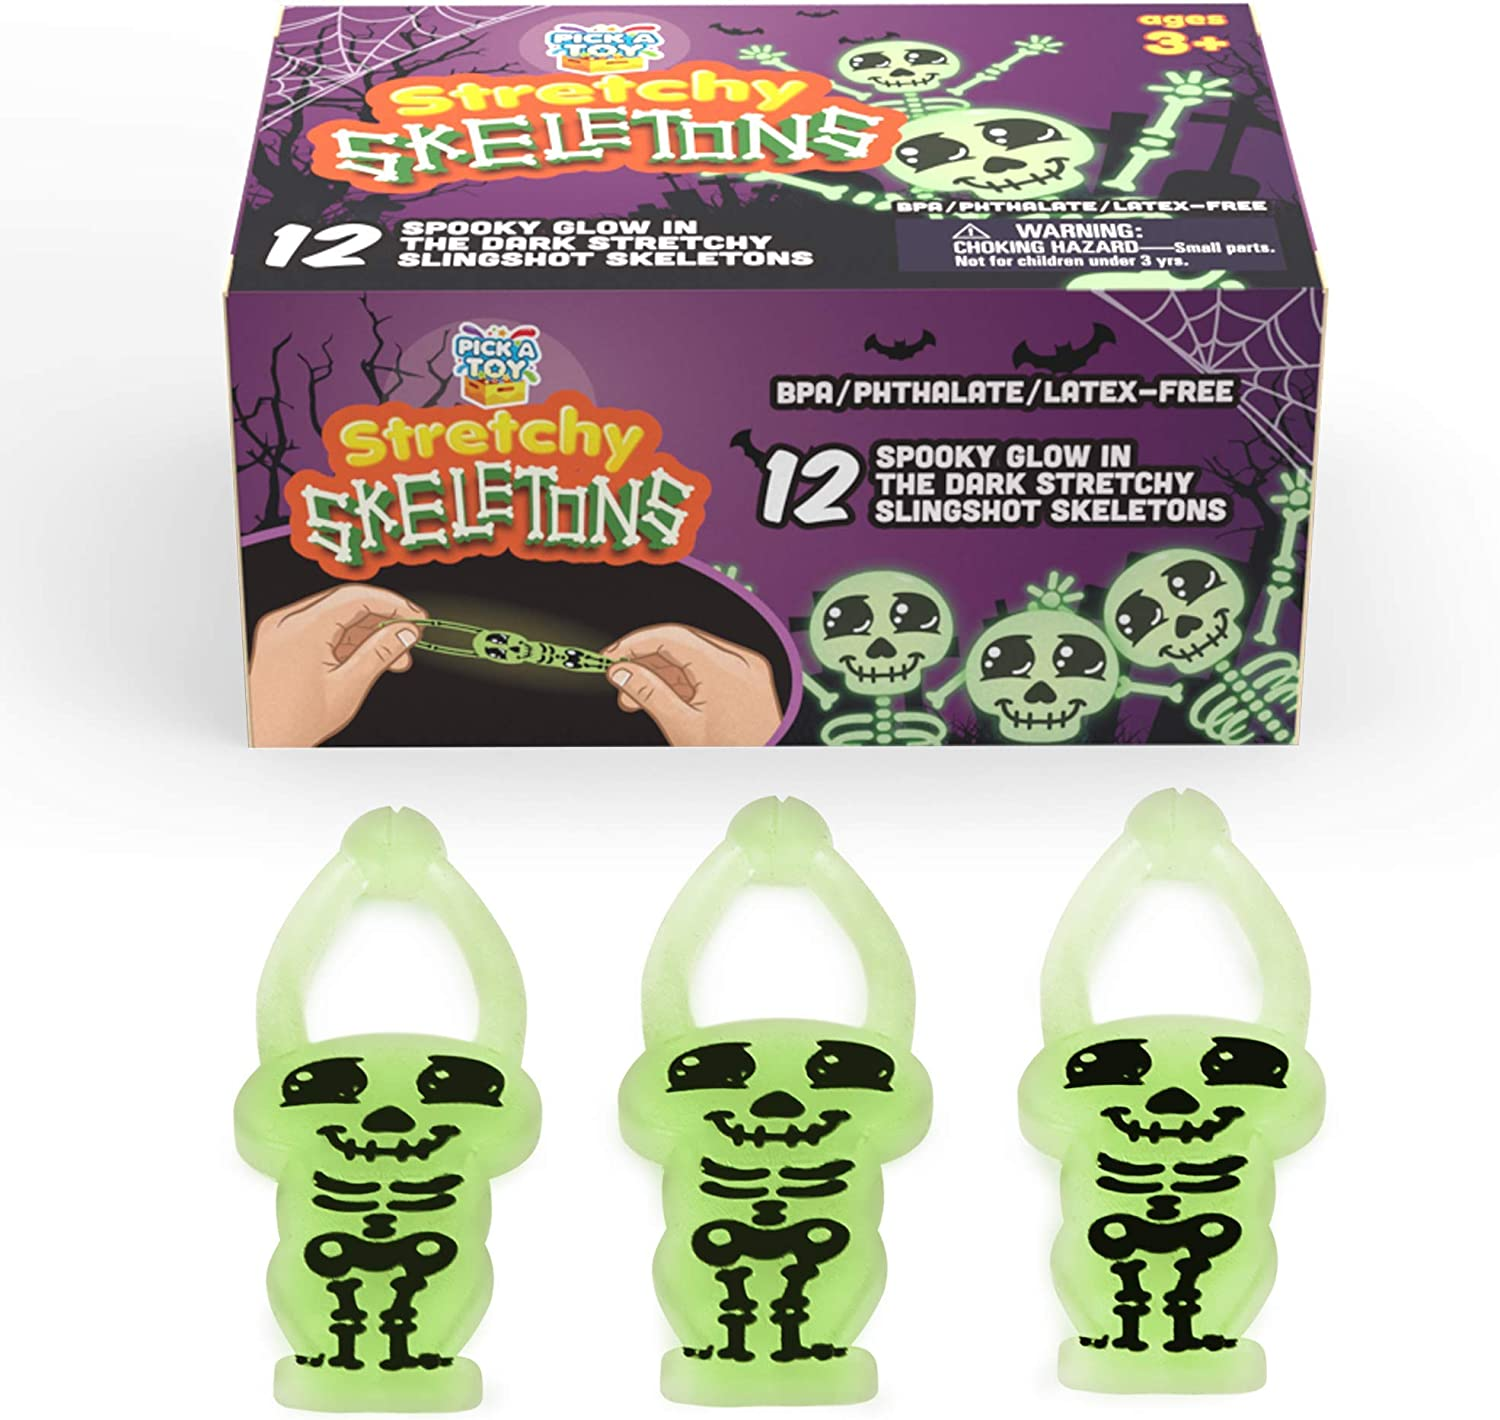 Stretchy Skeletons Boys Girls Kids Party Bag Fillers Pinata Toys